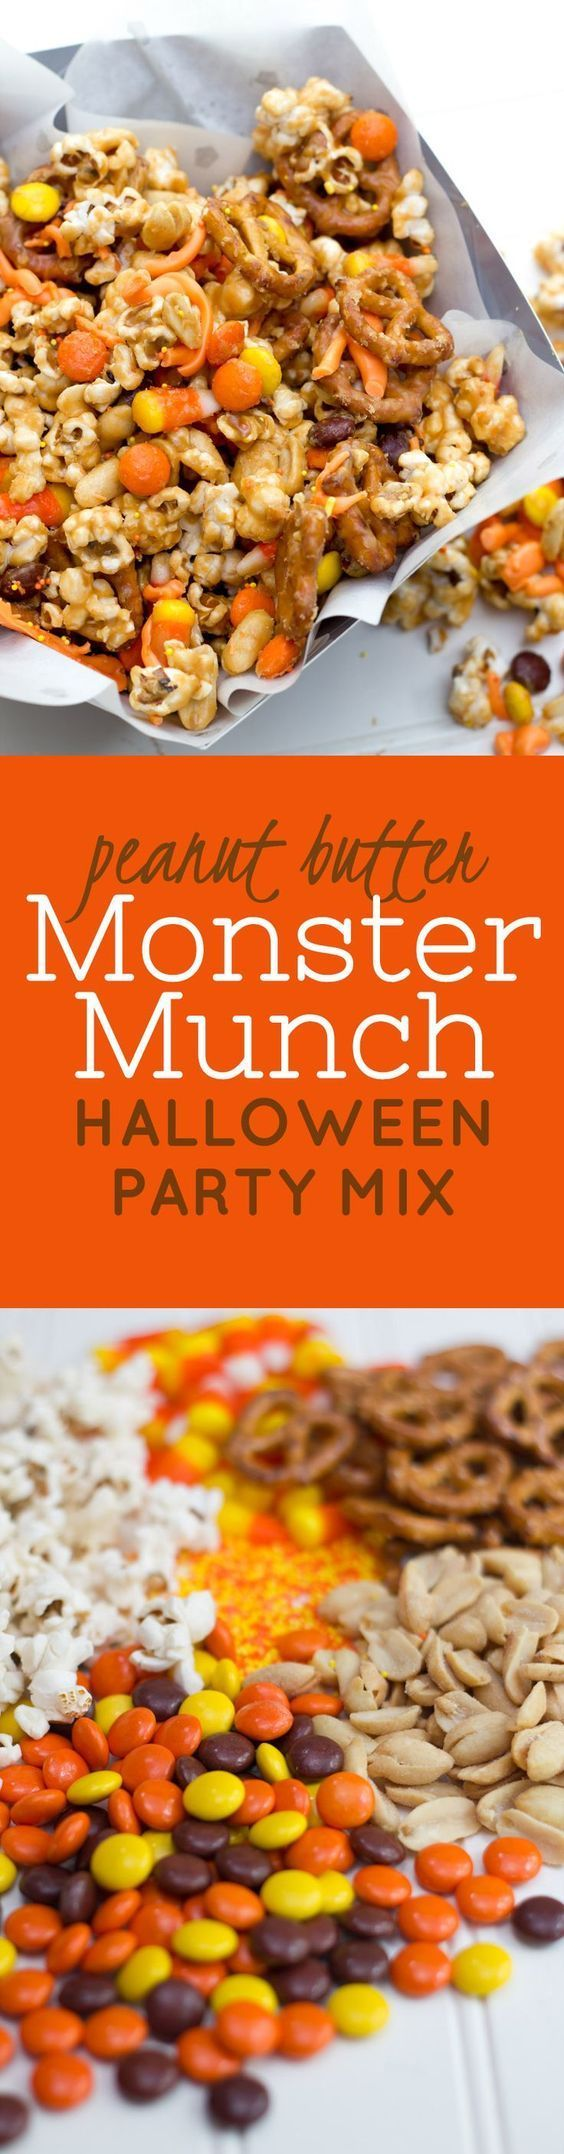 Food faith amp design thanksgiving goodies - Peanut Butter Monster Munch Halloween Party Mix Thanksgiving Snacksfall